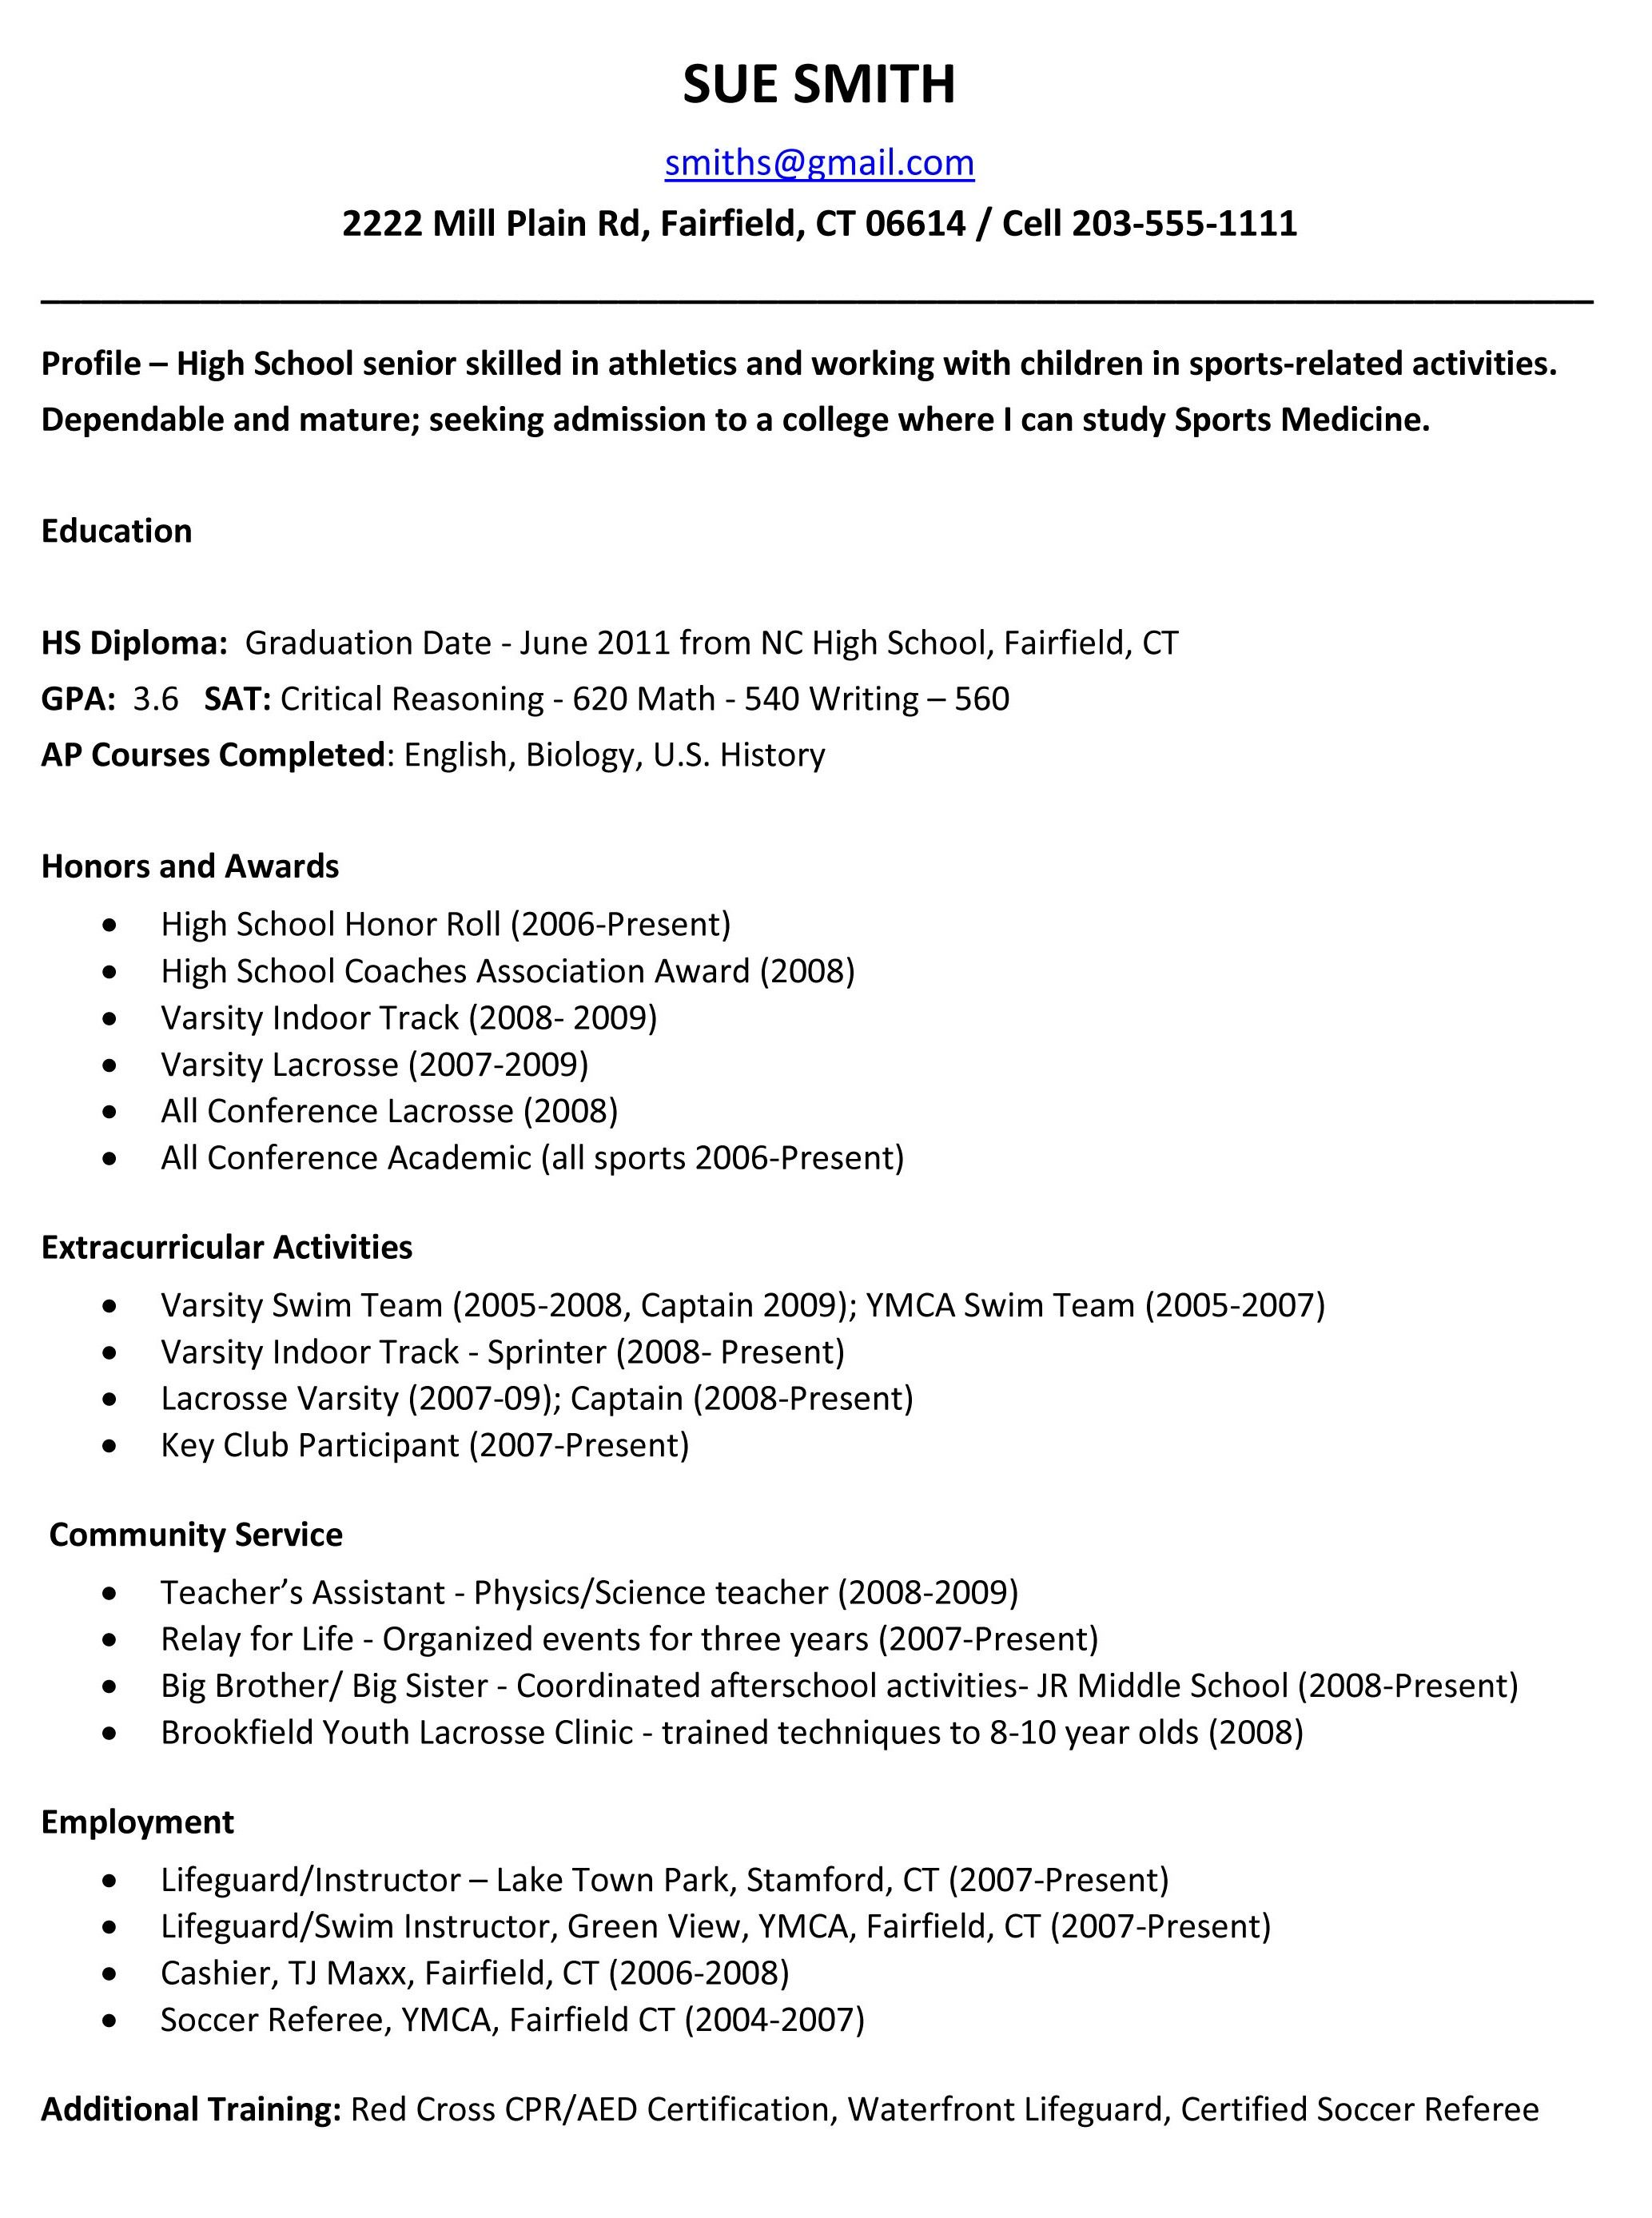 example resume for high school students for college applications school resume templateregularmidwesternerscom regularmidwesterners - Sample College Resumes For High School Seniors